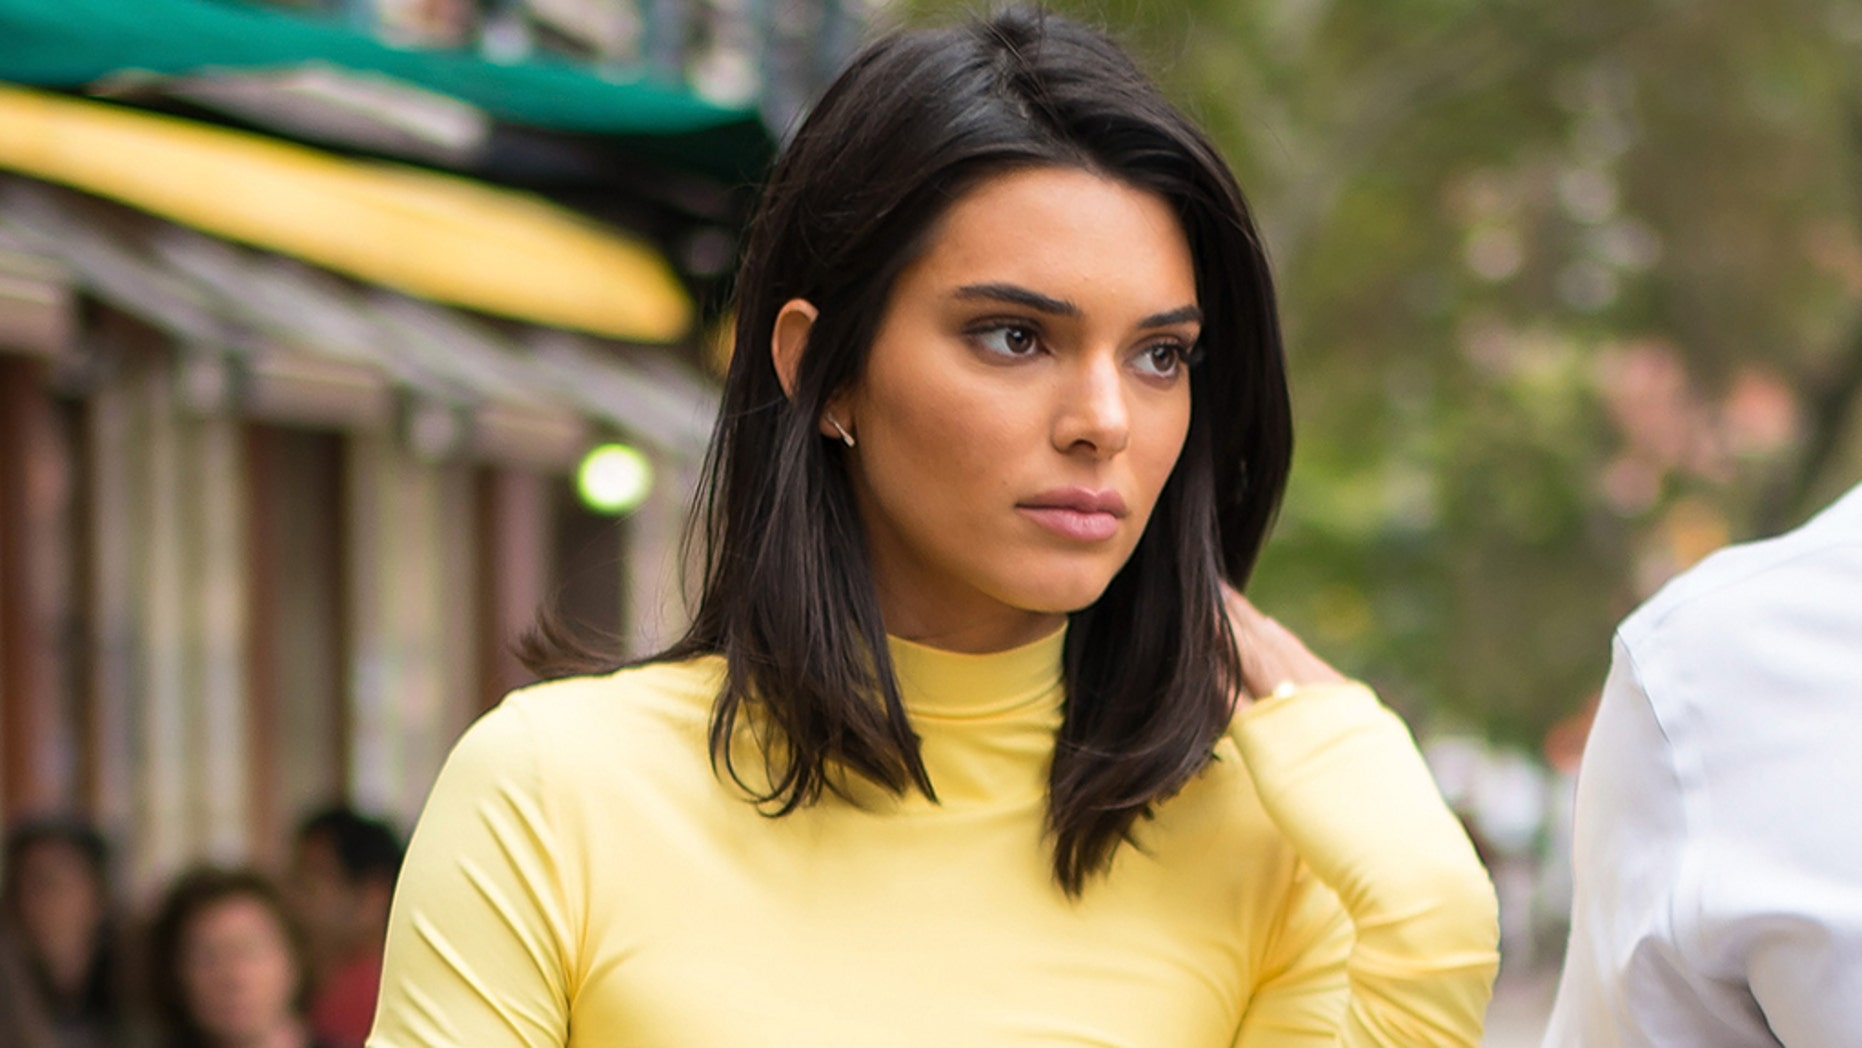 Fans Were Displeased With Kendall Jenner's